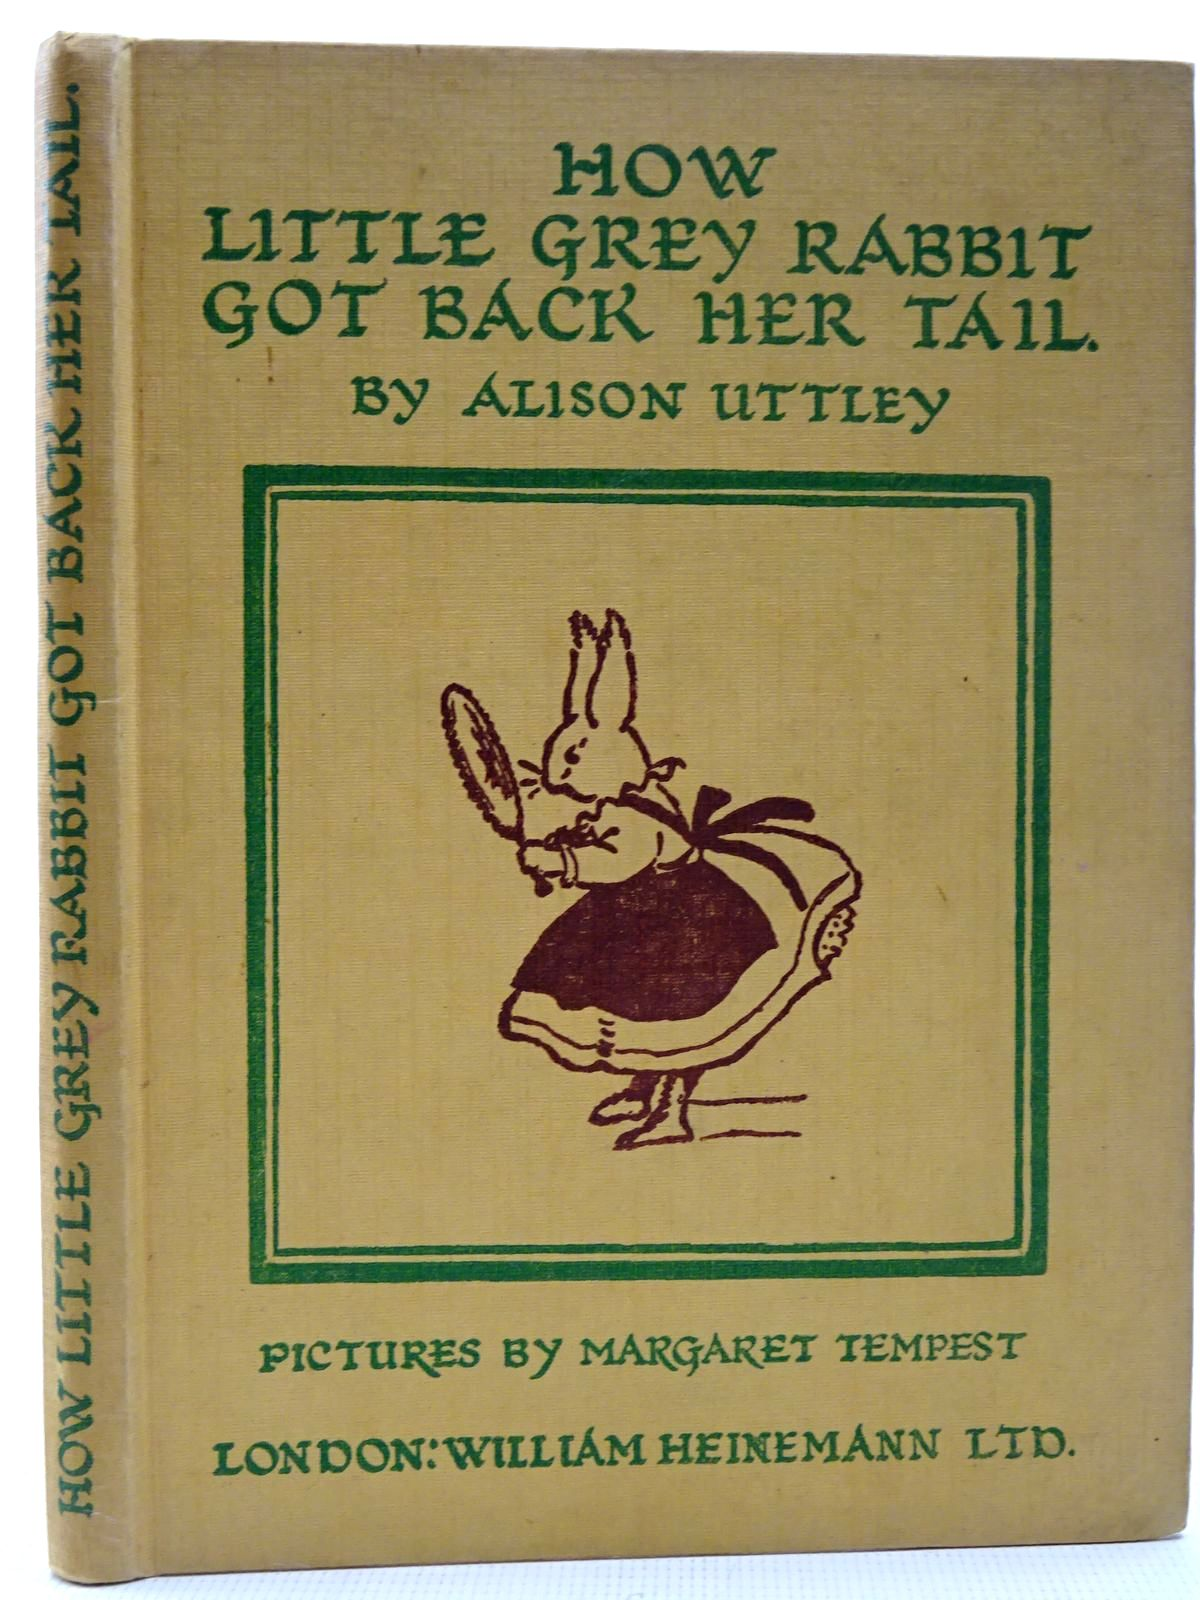 Photo of HOW LITTLE GREY RABBIT GOT BACK HER TAIL written by Uttley, Alison illustrated by Tempest, Margaret published by William Heinemann Ltd. (STOCK CODE: 2126417)  for sale by Stella & Rose's Books